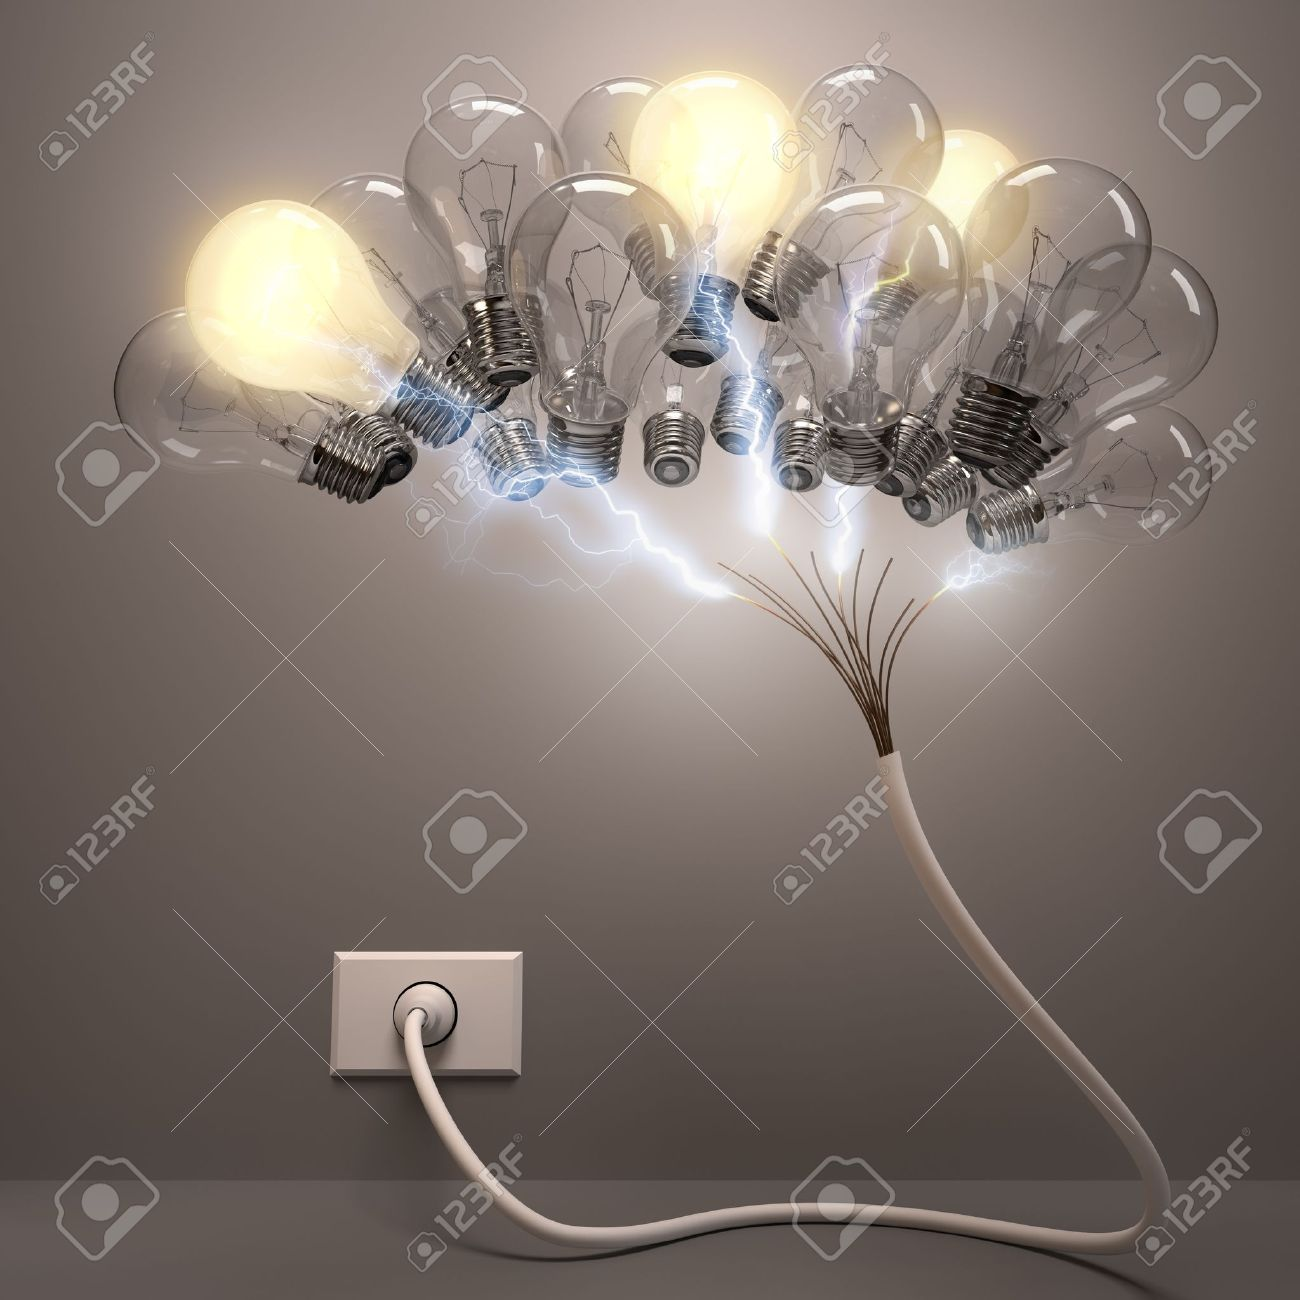 Grouped lamps shaped brain. Some lamps lighting, concept of active neurons. - 19905644